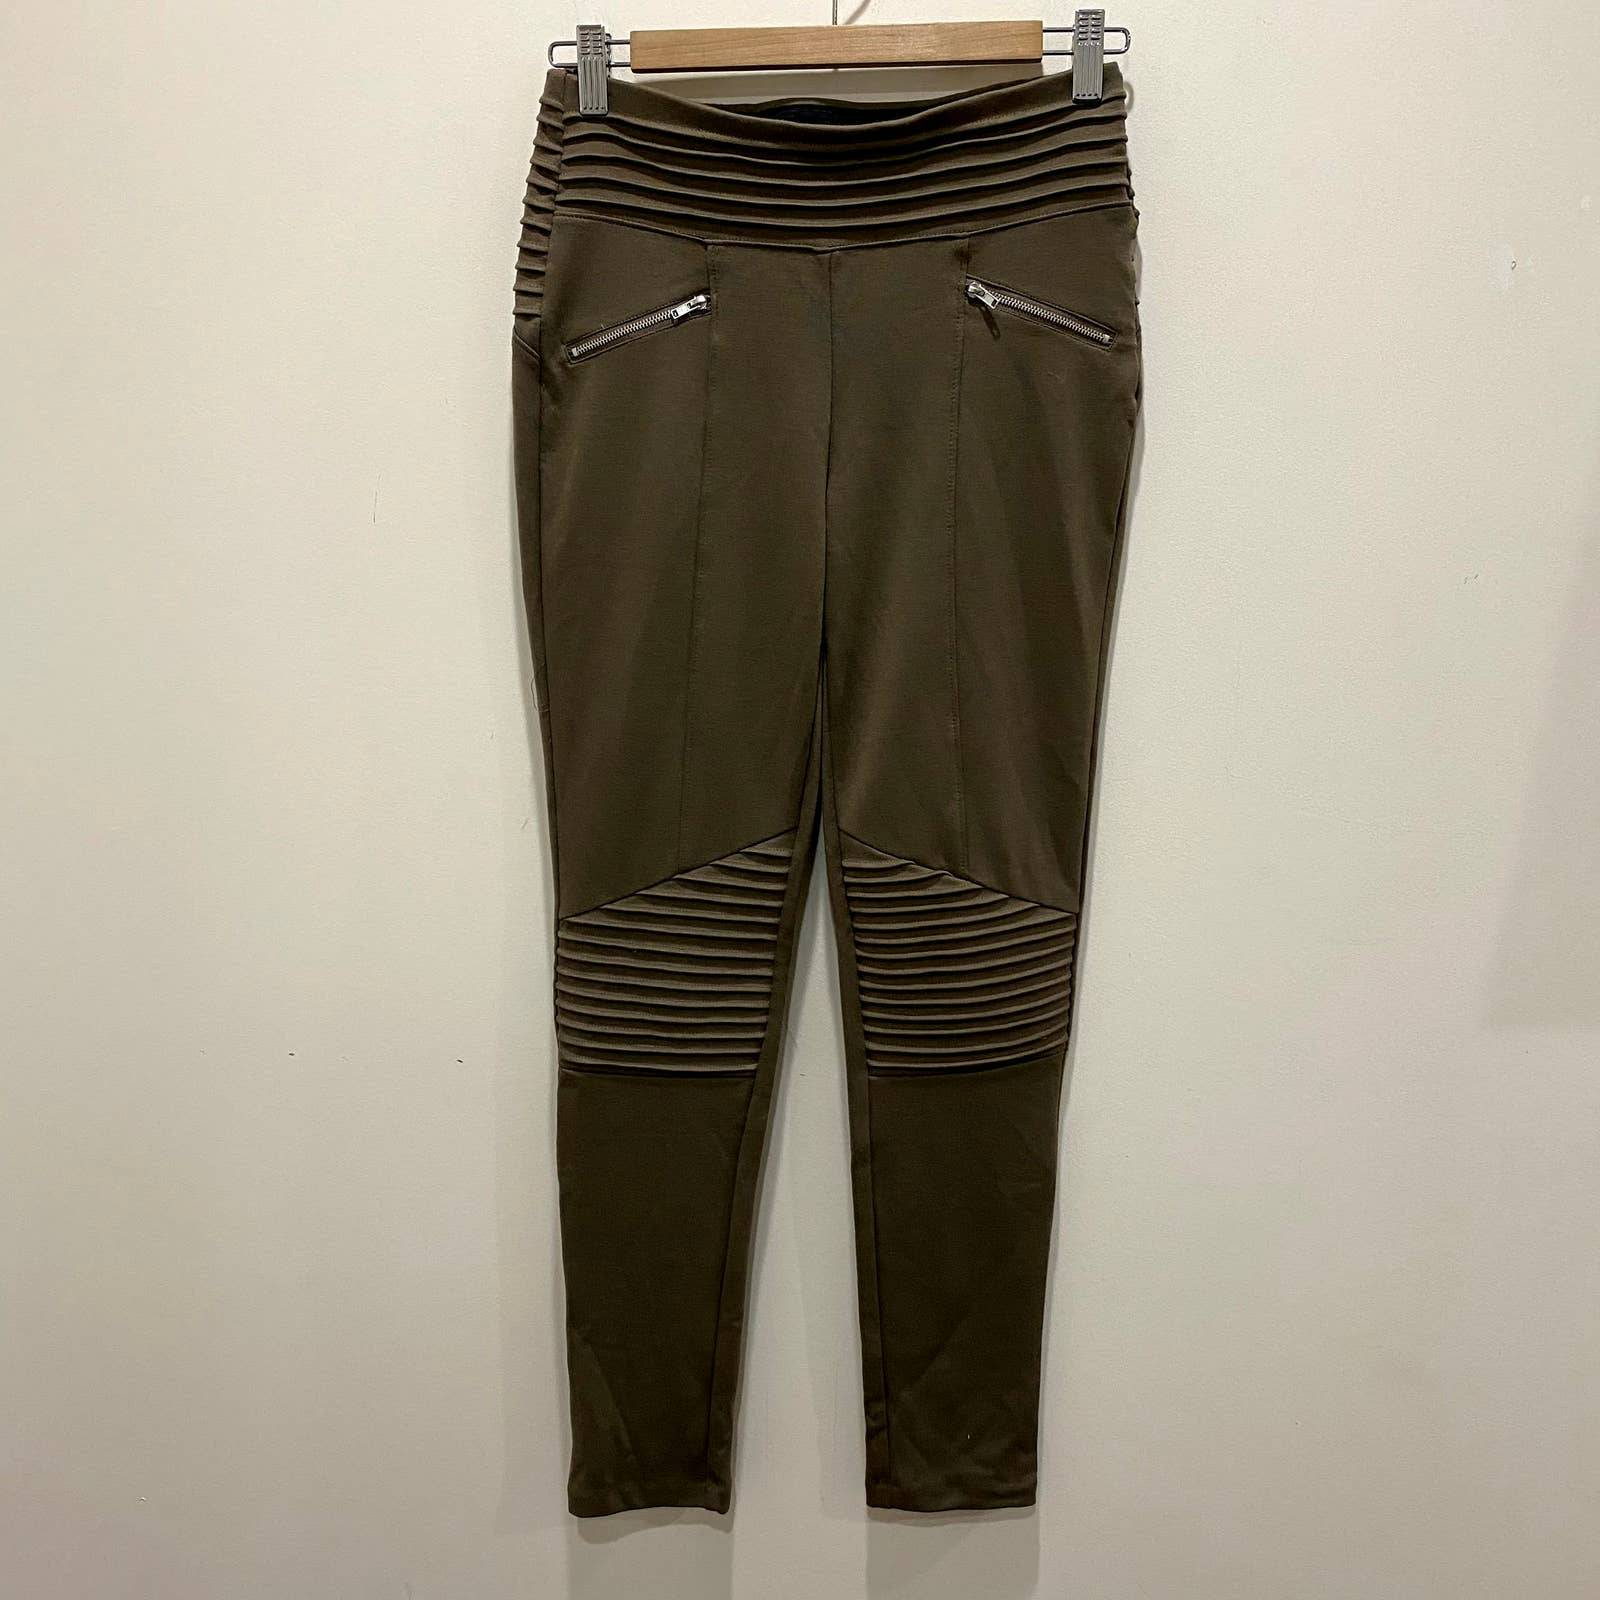 Have Taupe Tan Moto Leggings Size Small